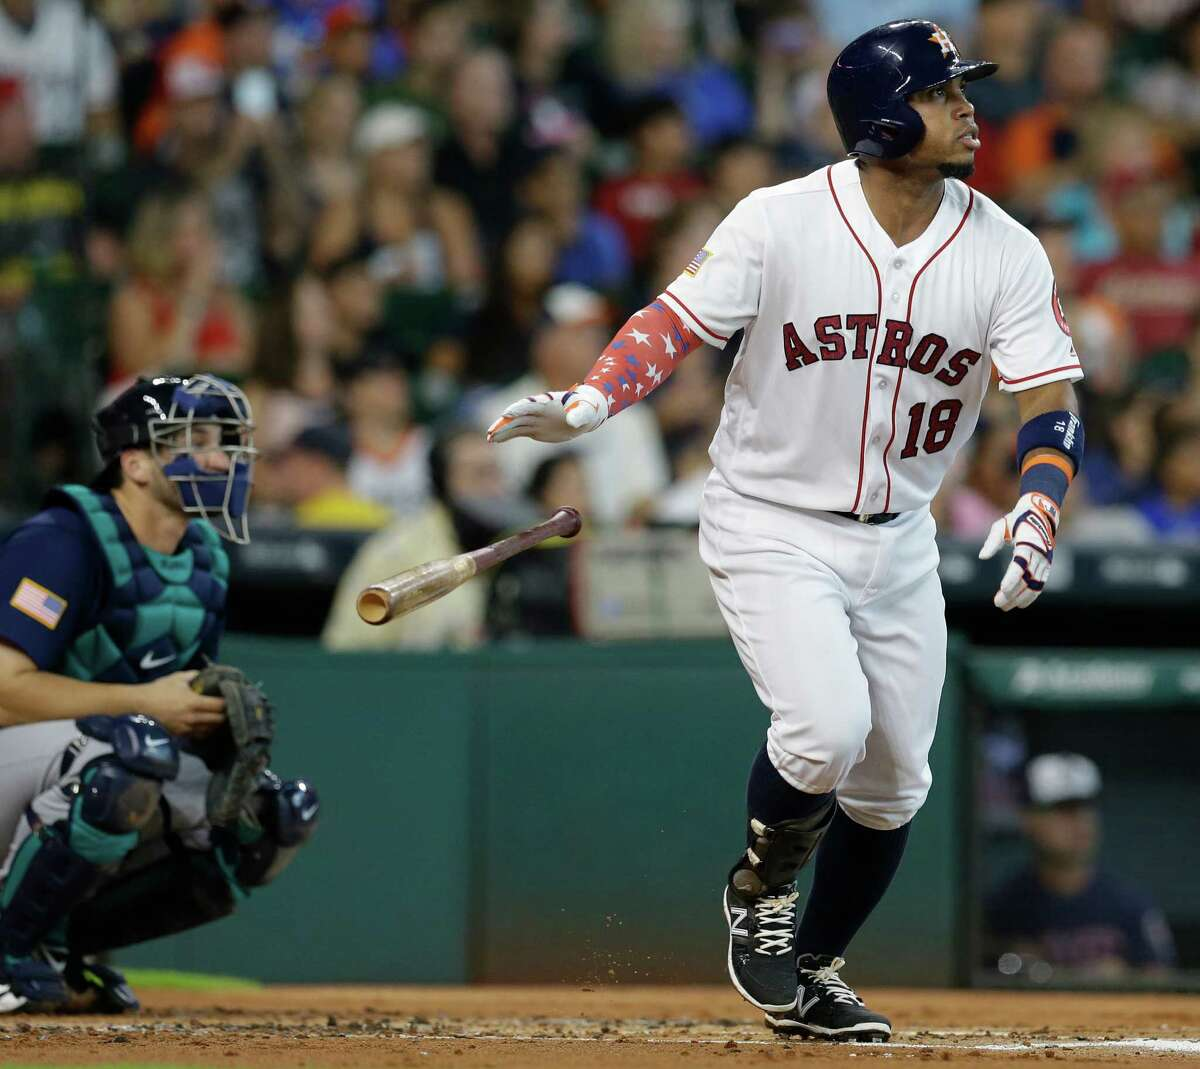 Luis Valbuena is another Astros free agent.